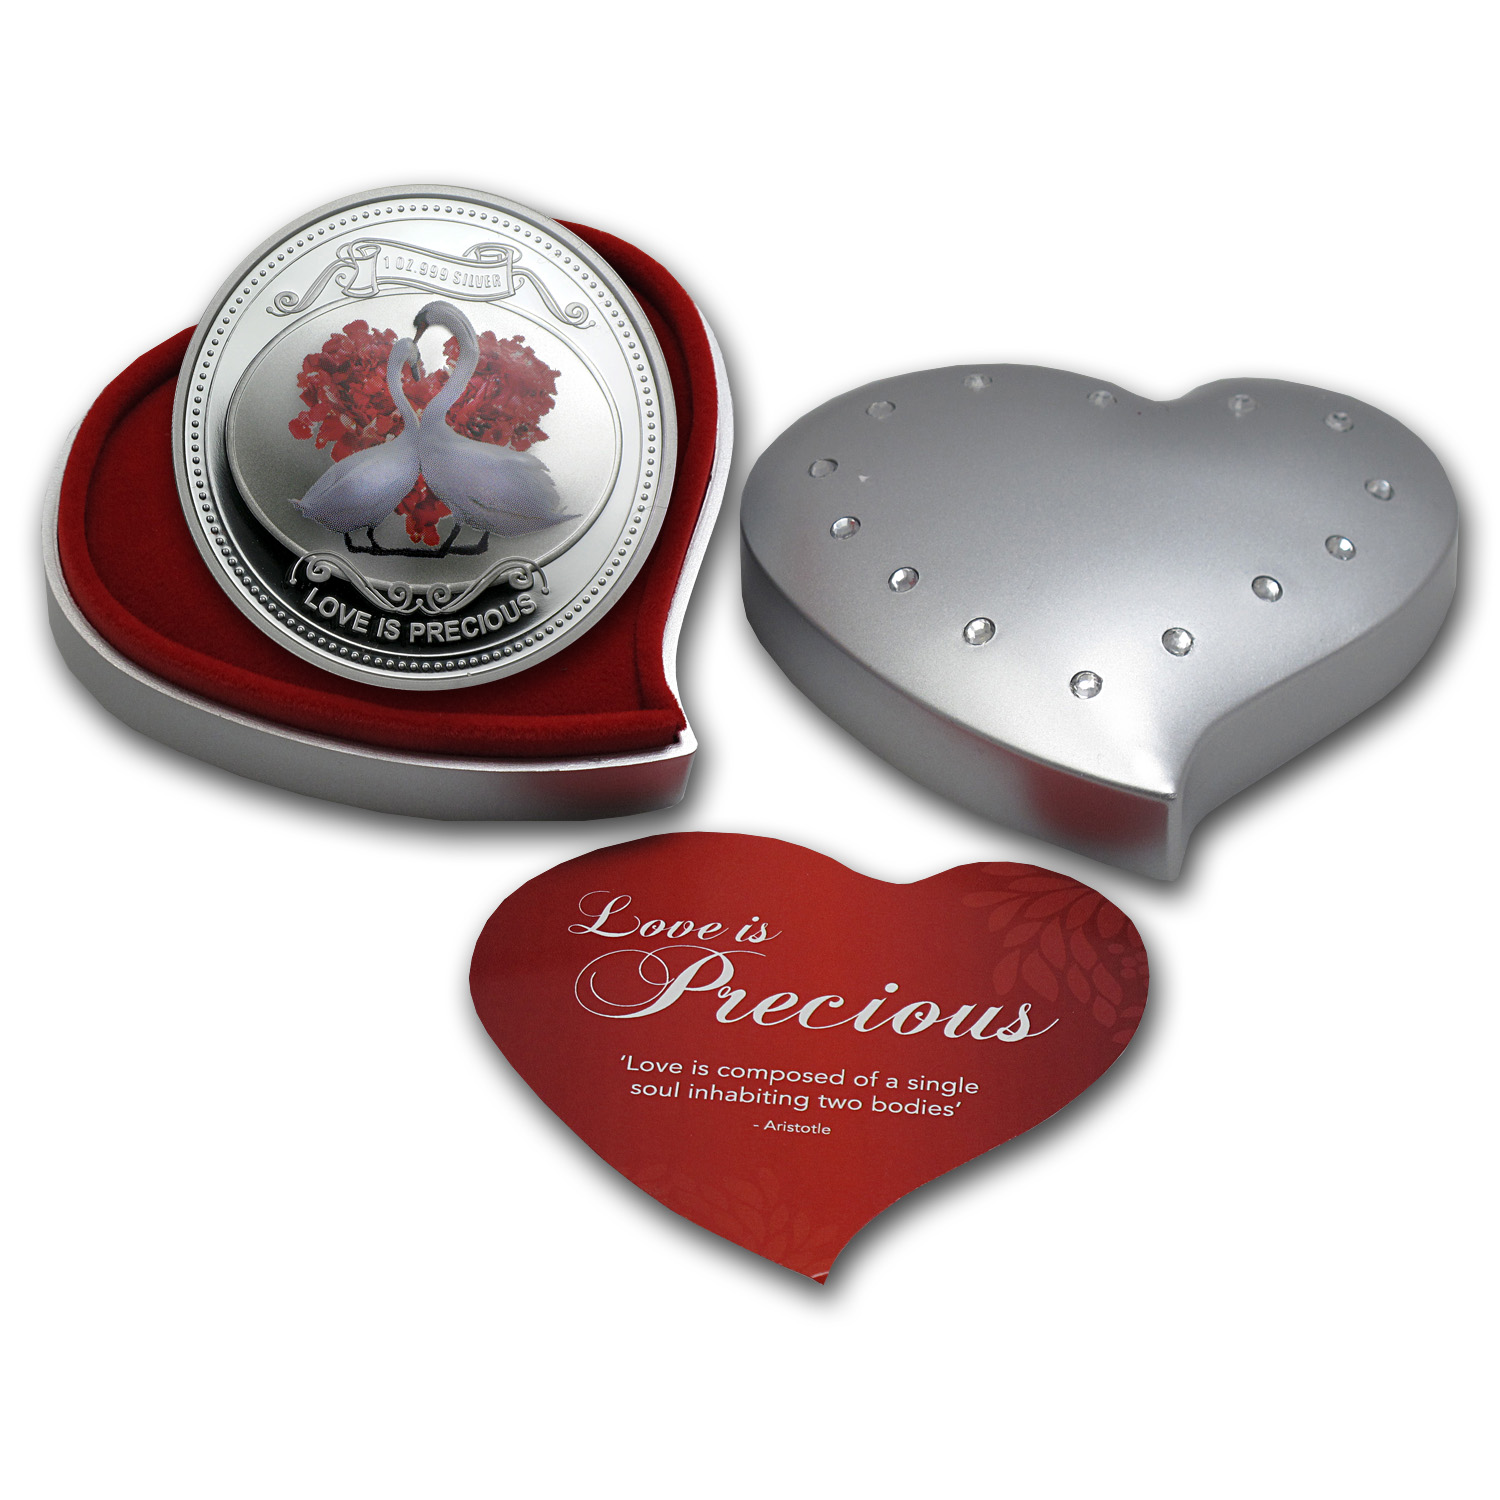 2014 Niue 1 oz Silver $2 Love is Precious Proof (w/Box & COA)